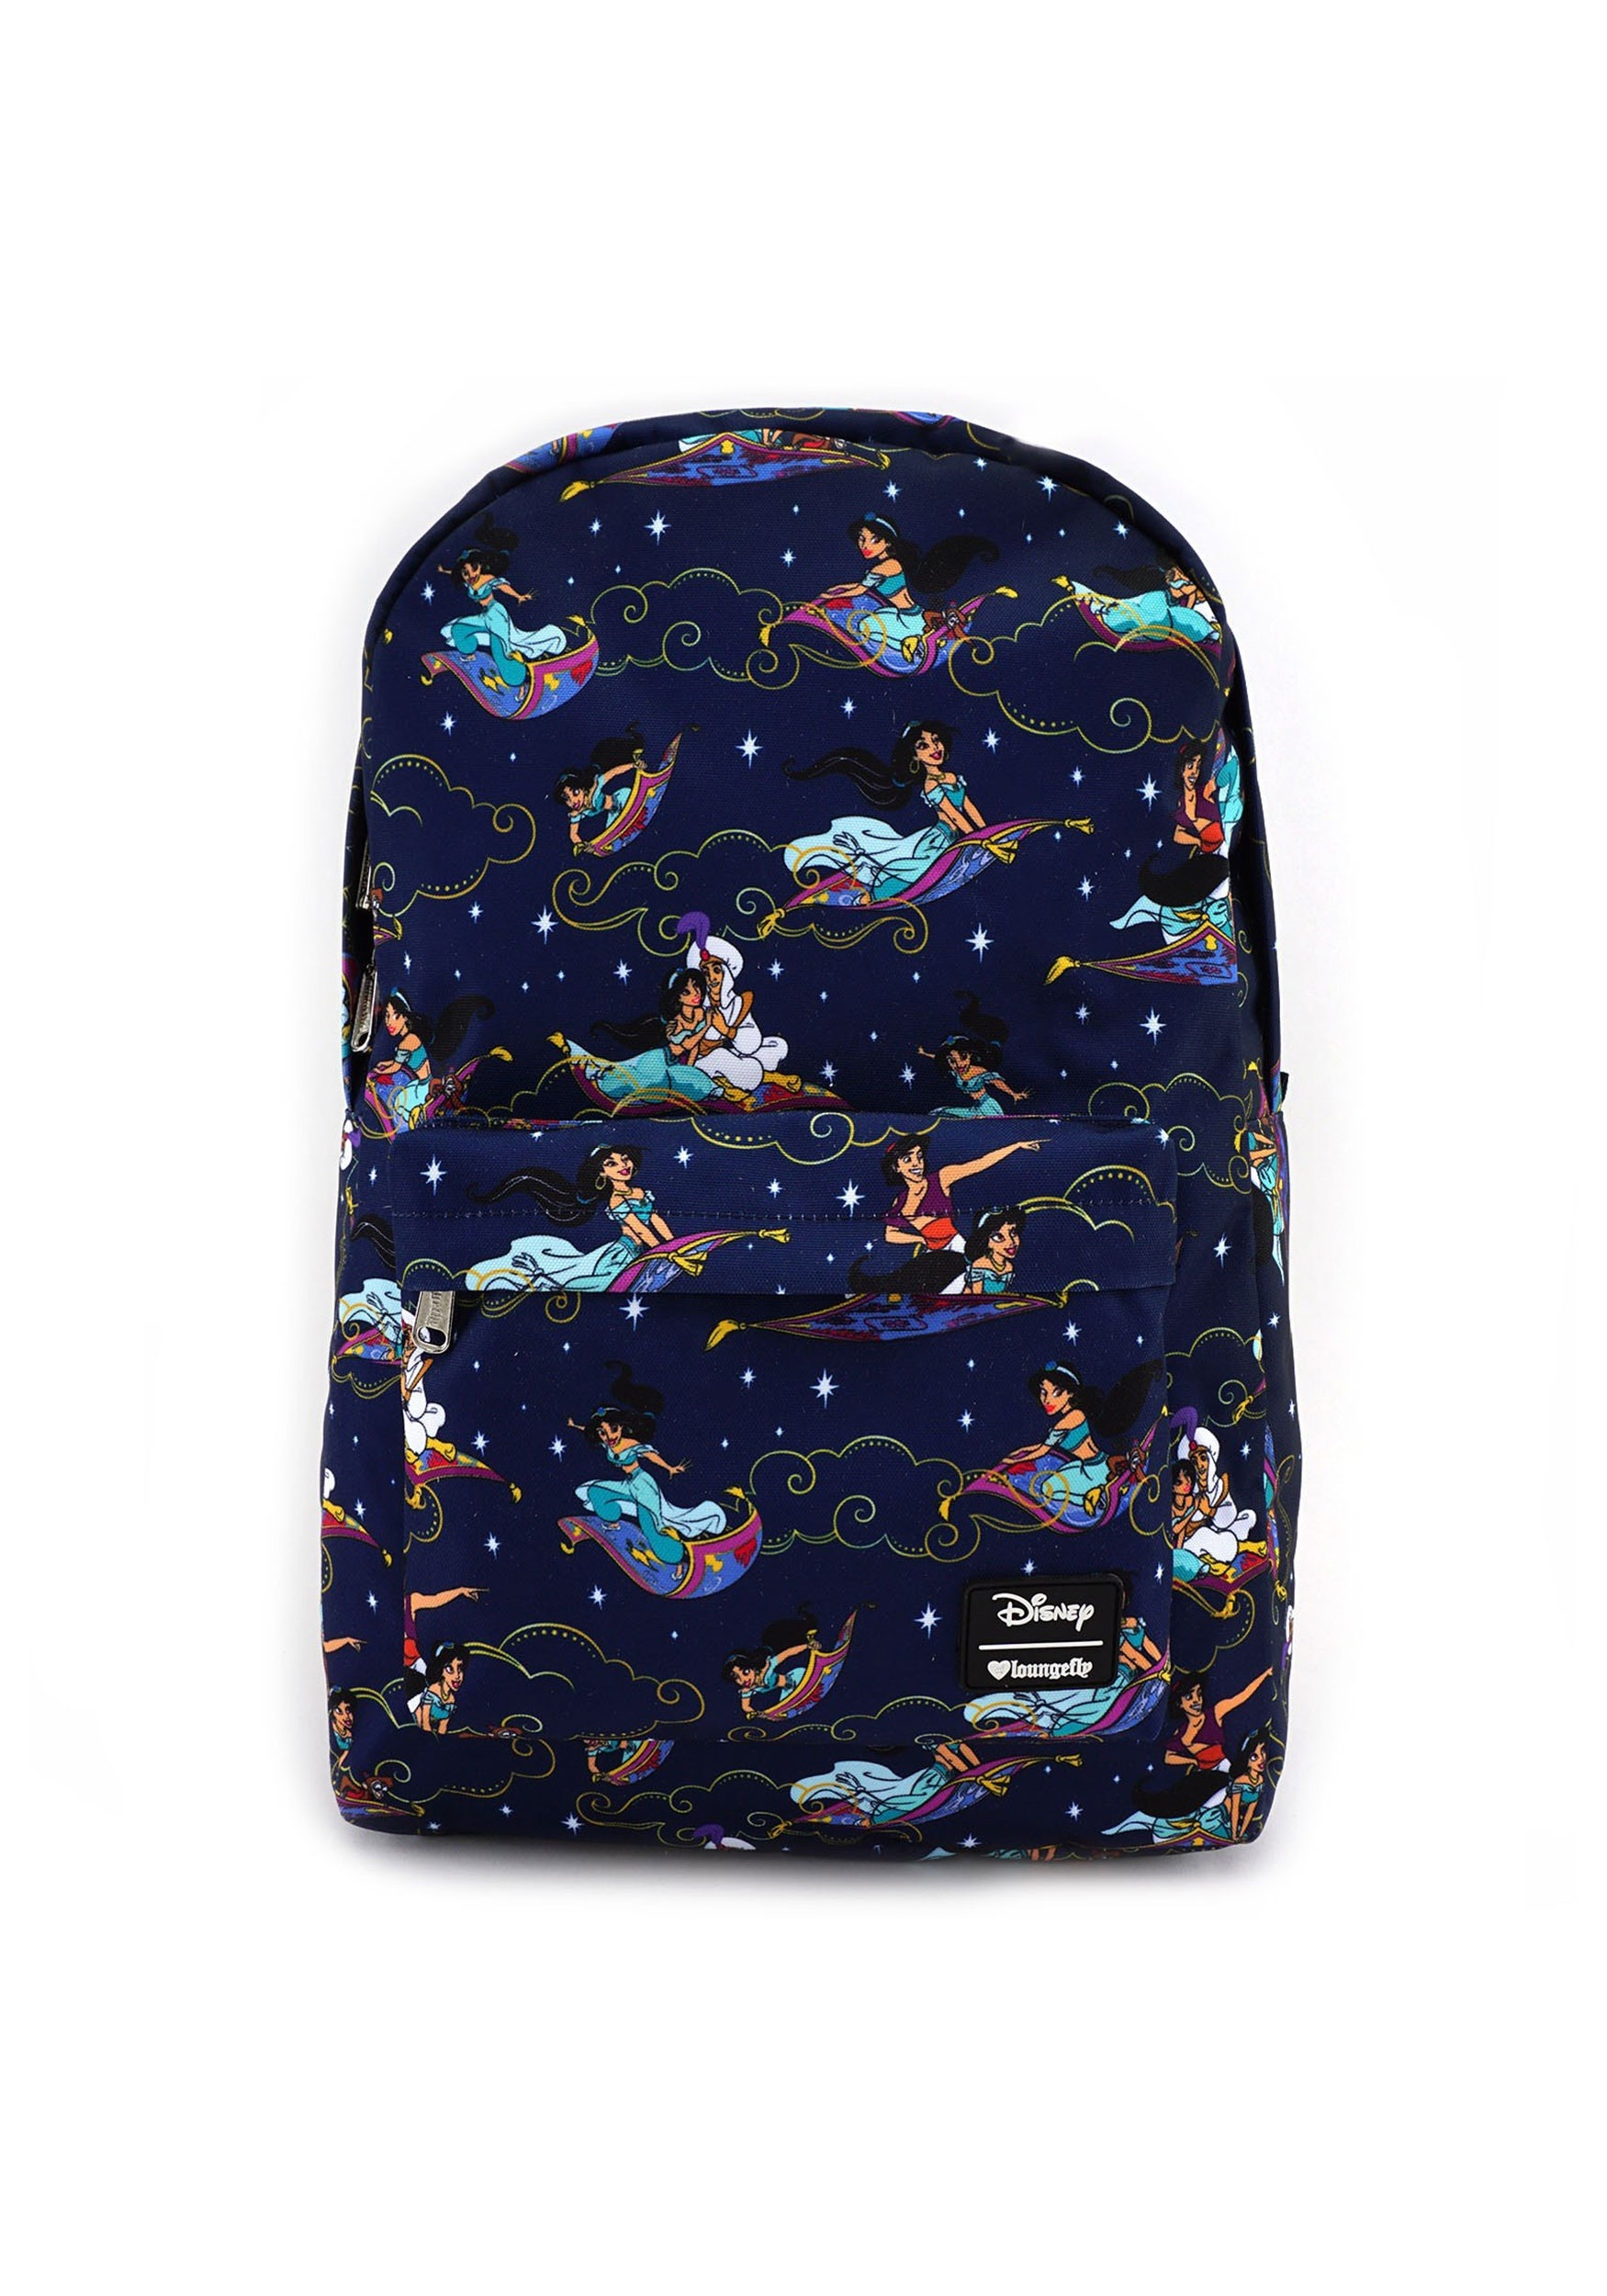 Aladdin Magic Carpet Ride Print Backpack by Loungefly Loungefly Aladdin Magic Carpet Ride Print Backpack